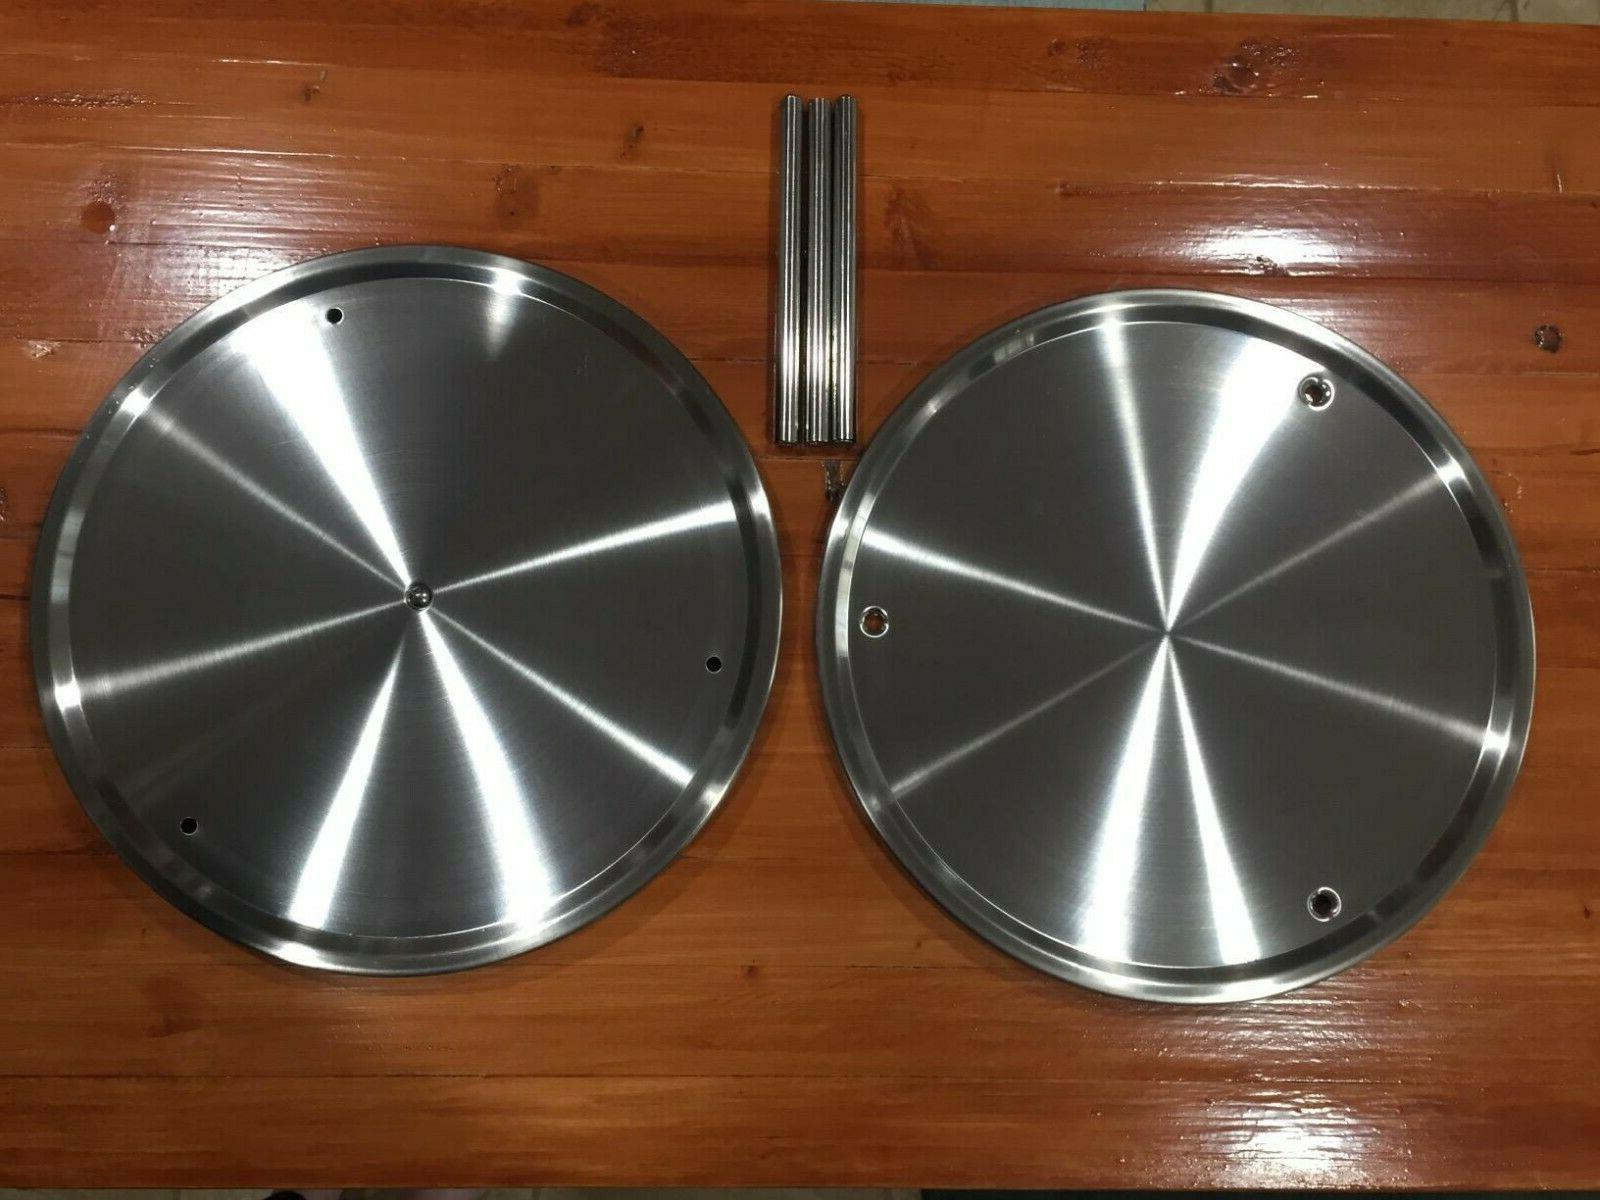 2 Susan, 360-degree Spice Stainless Steel